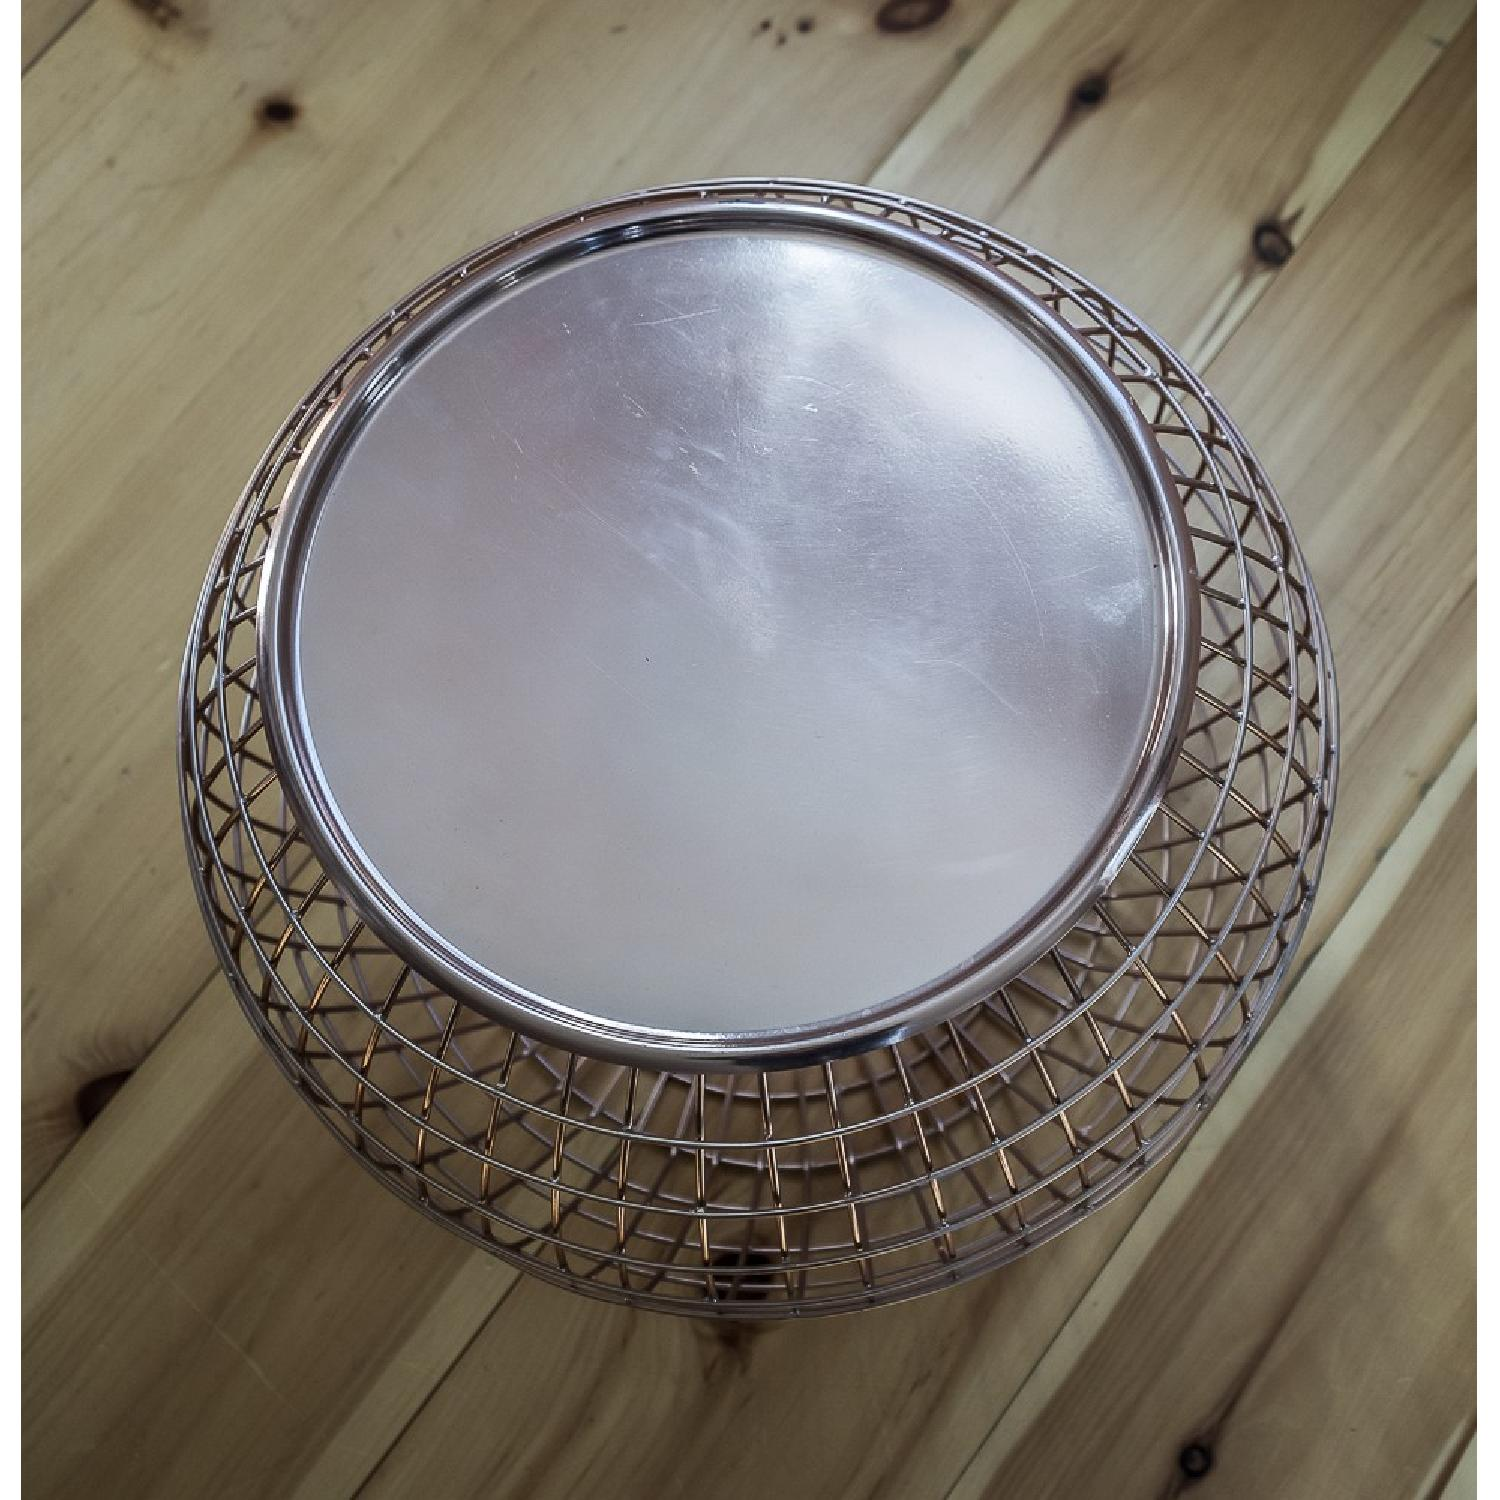 ABC Carpet and Home Copper Wire Tray Table - image-2